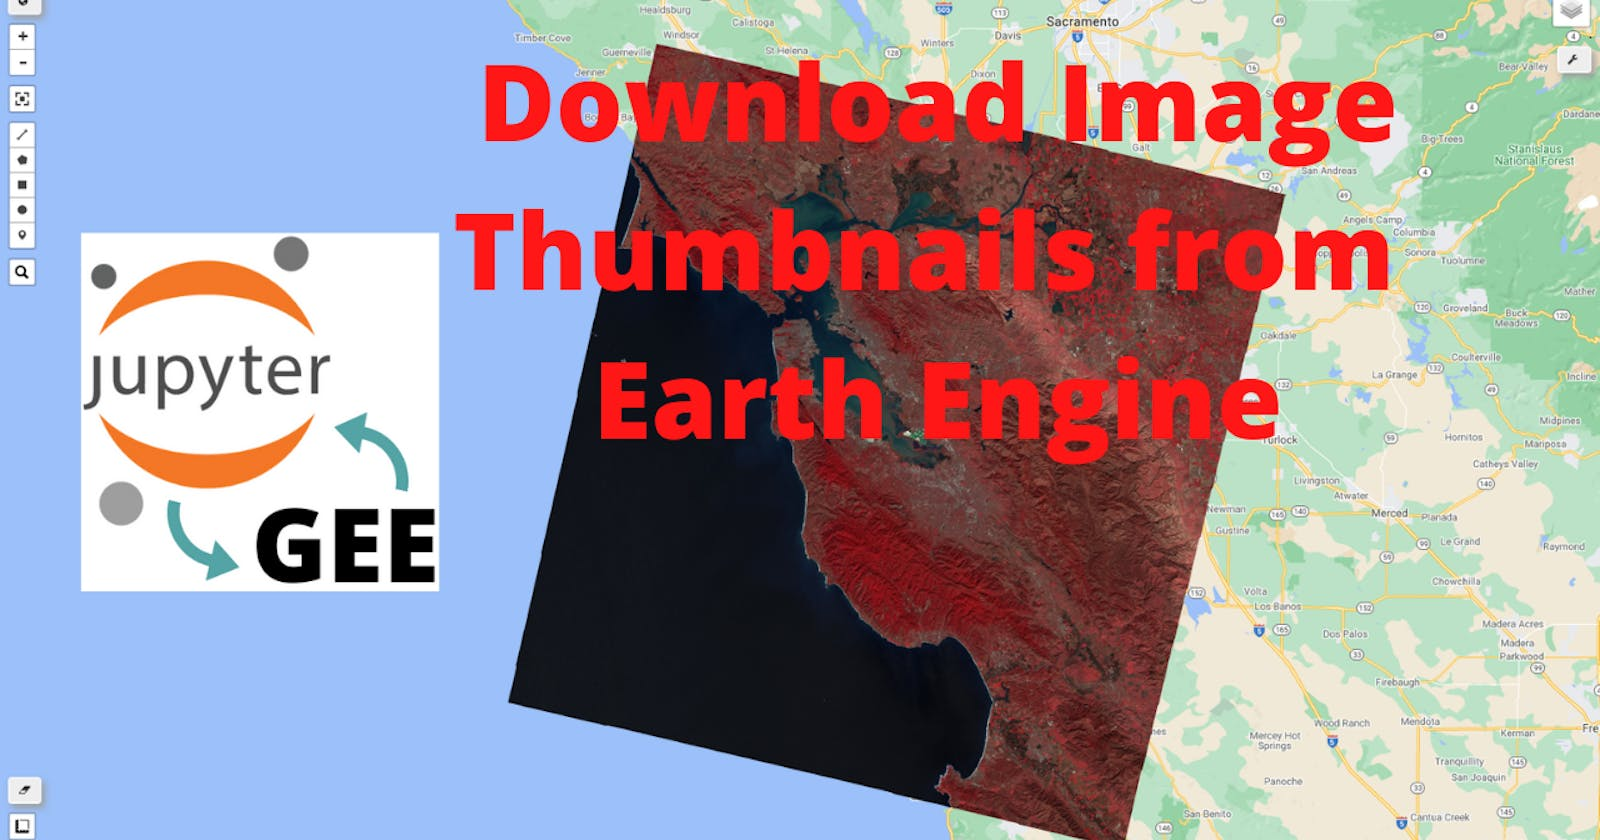 GEE Tutorial #47 - How to download image thumbnails from GEE